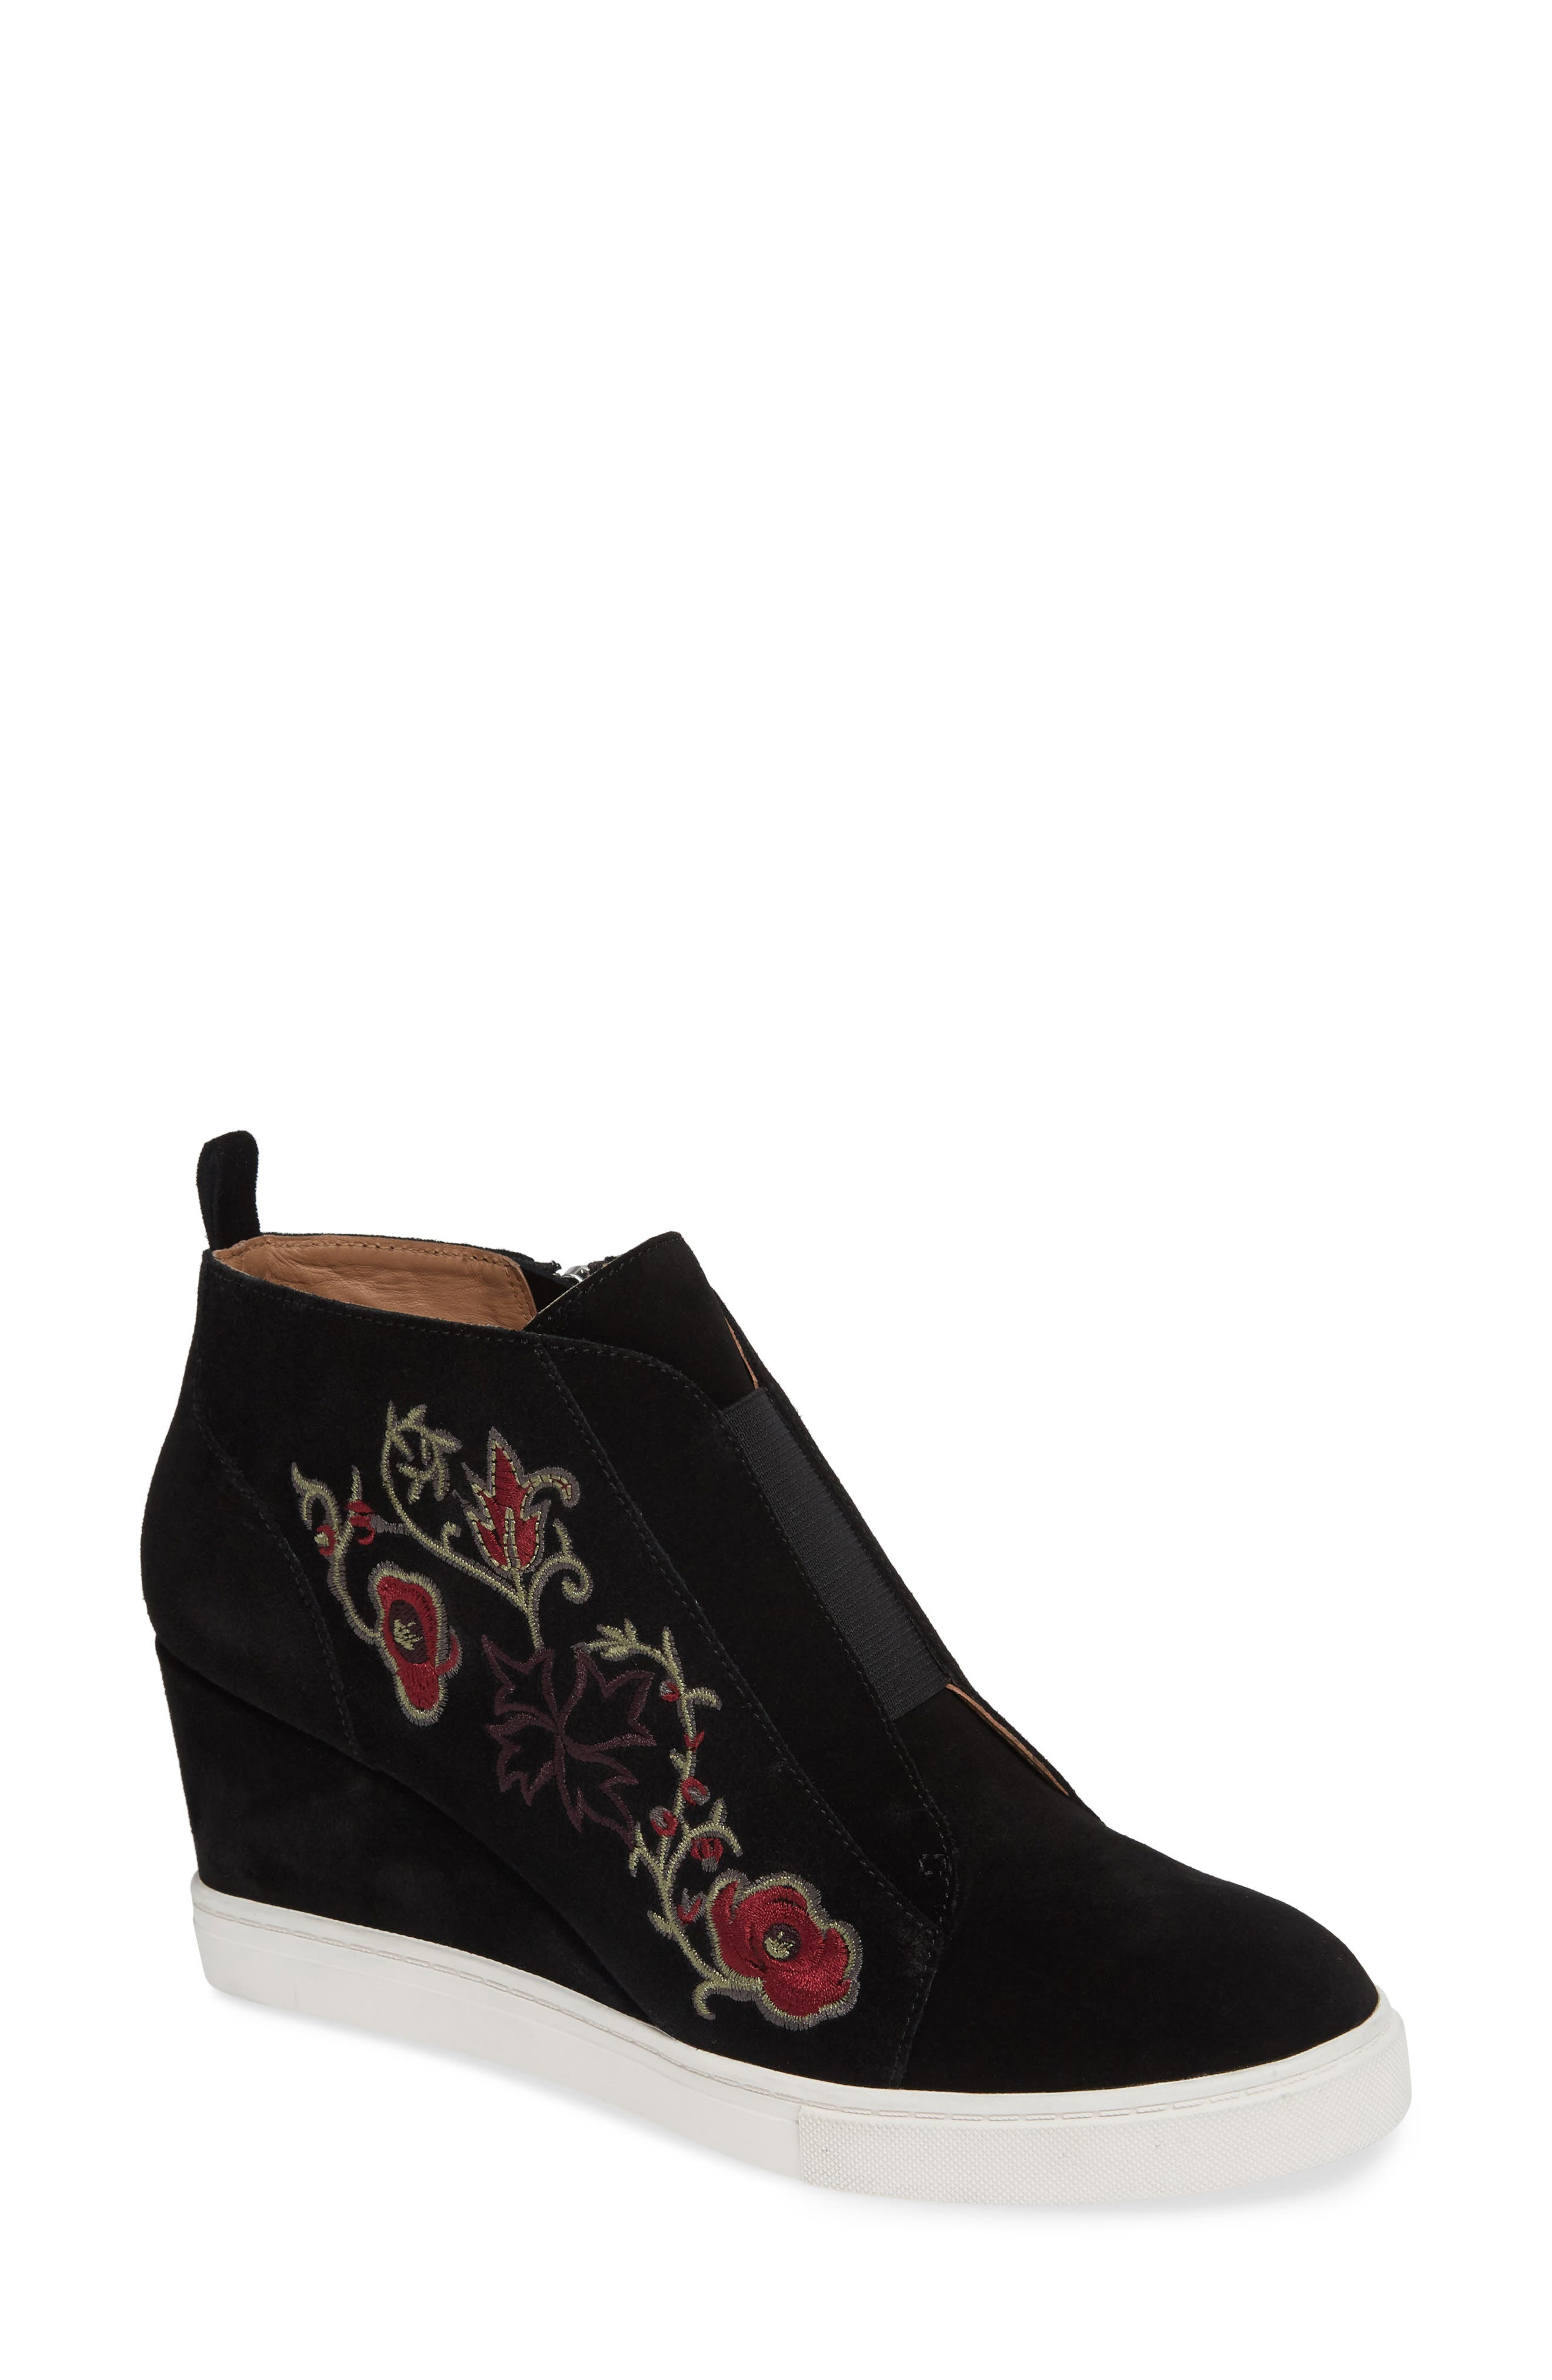 LINEA PAOLO, Felicia II Wedge Bootie, Main thumbnail 1, color, BLACK/ BLACK EMBROIDERY SUEDE